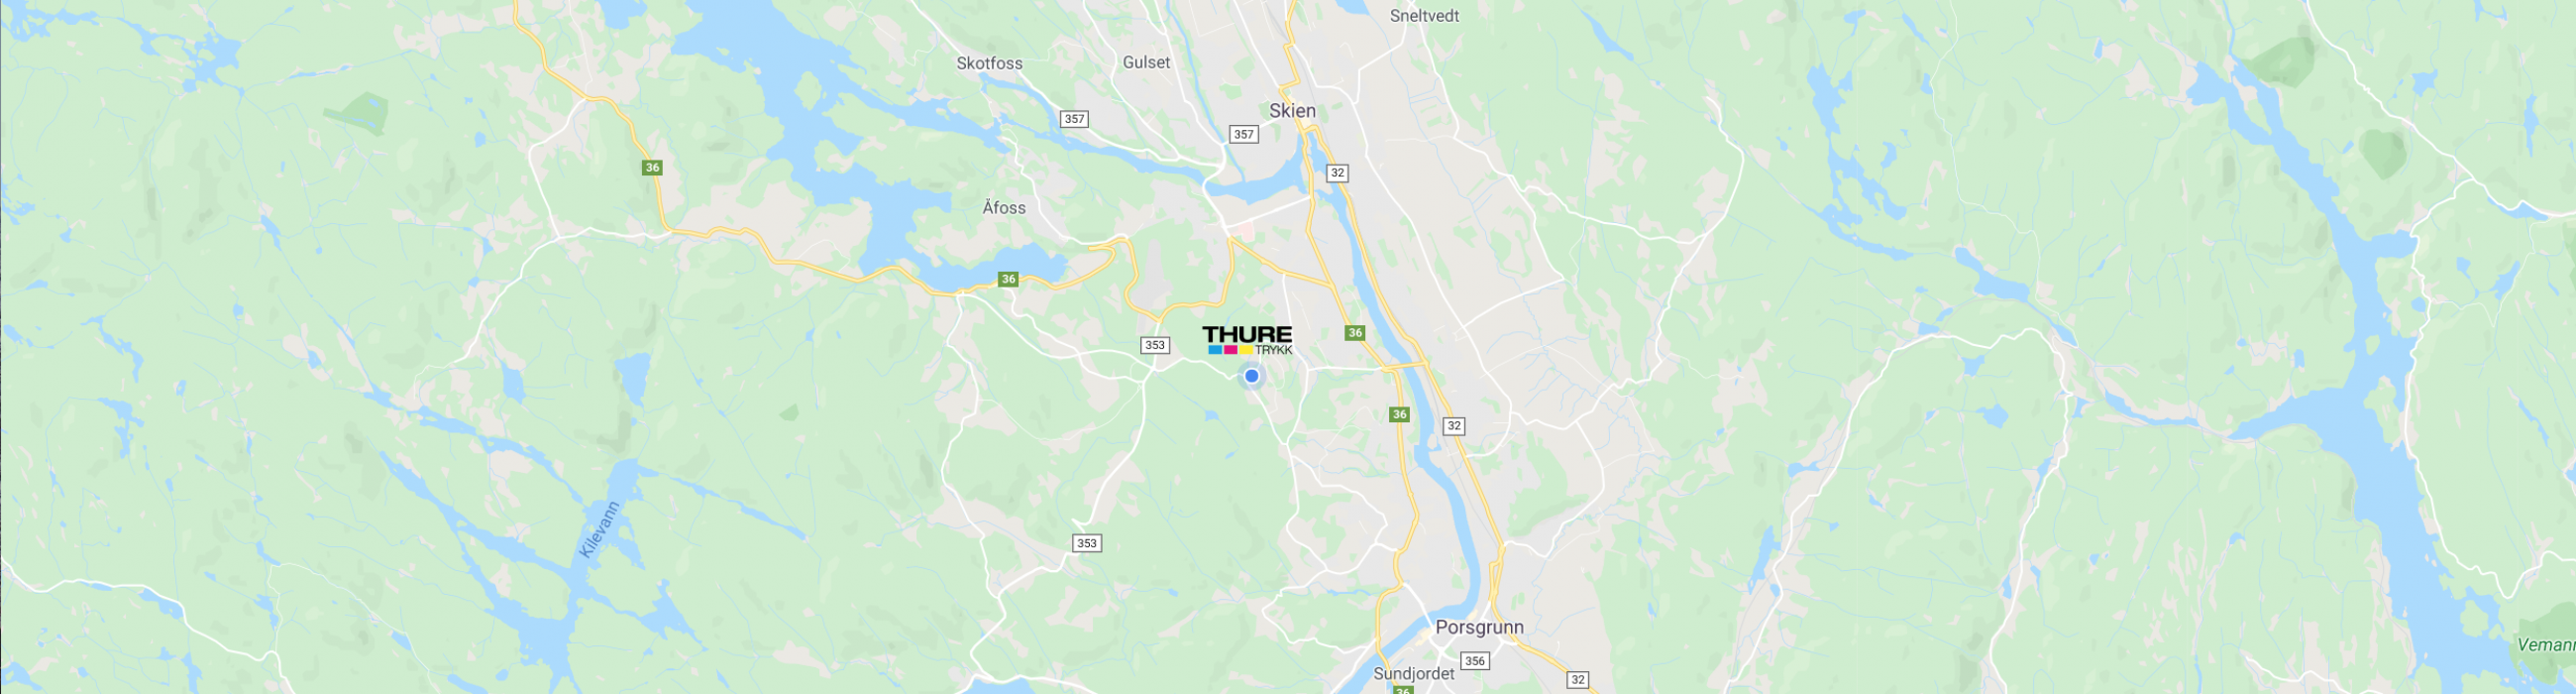 thure-trykk-map